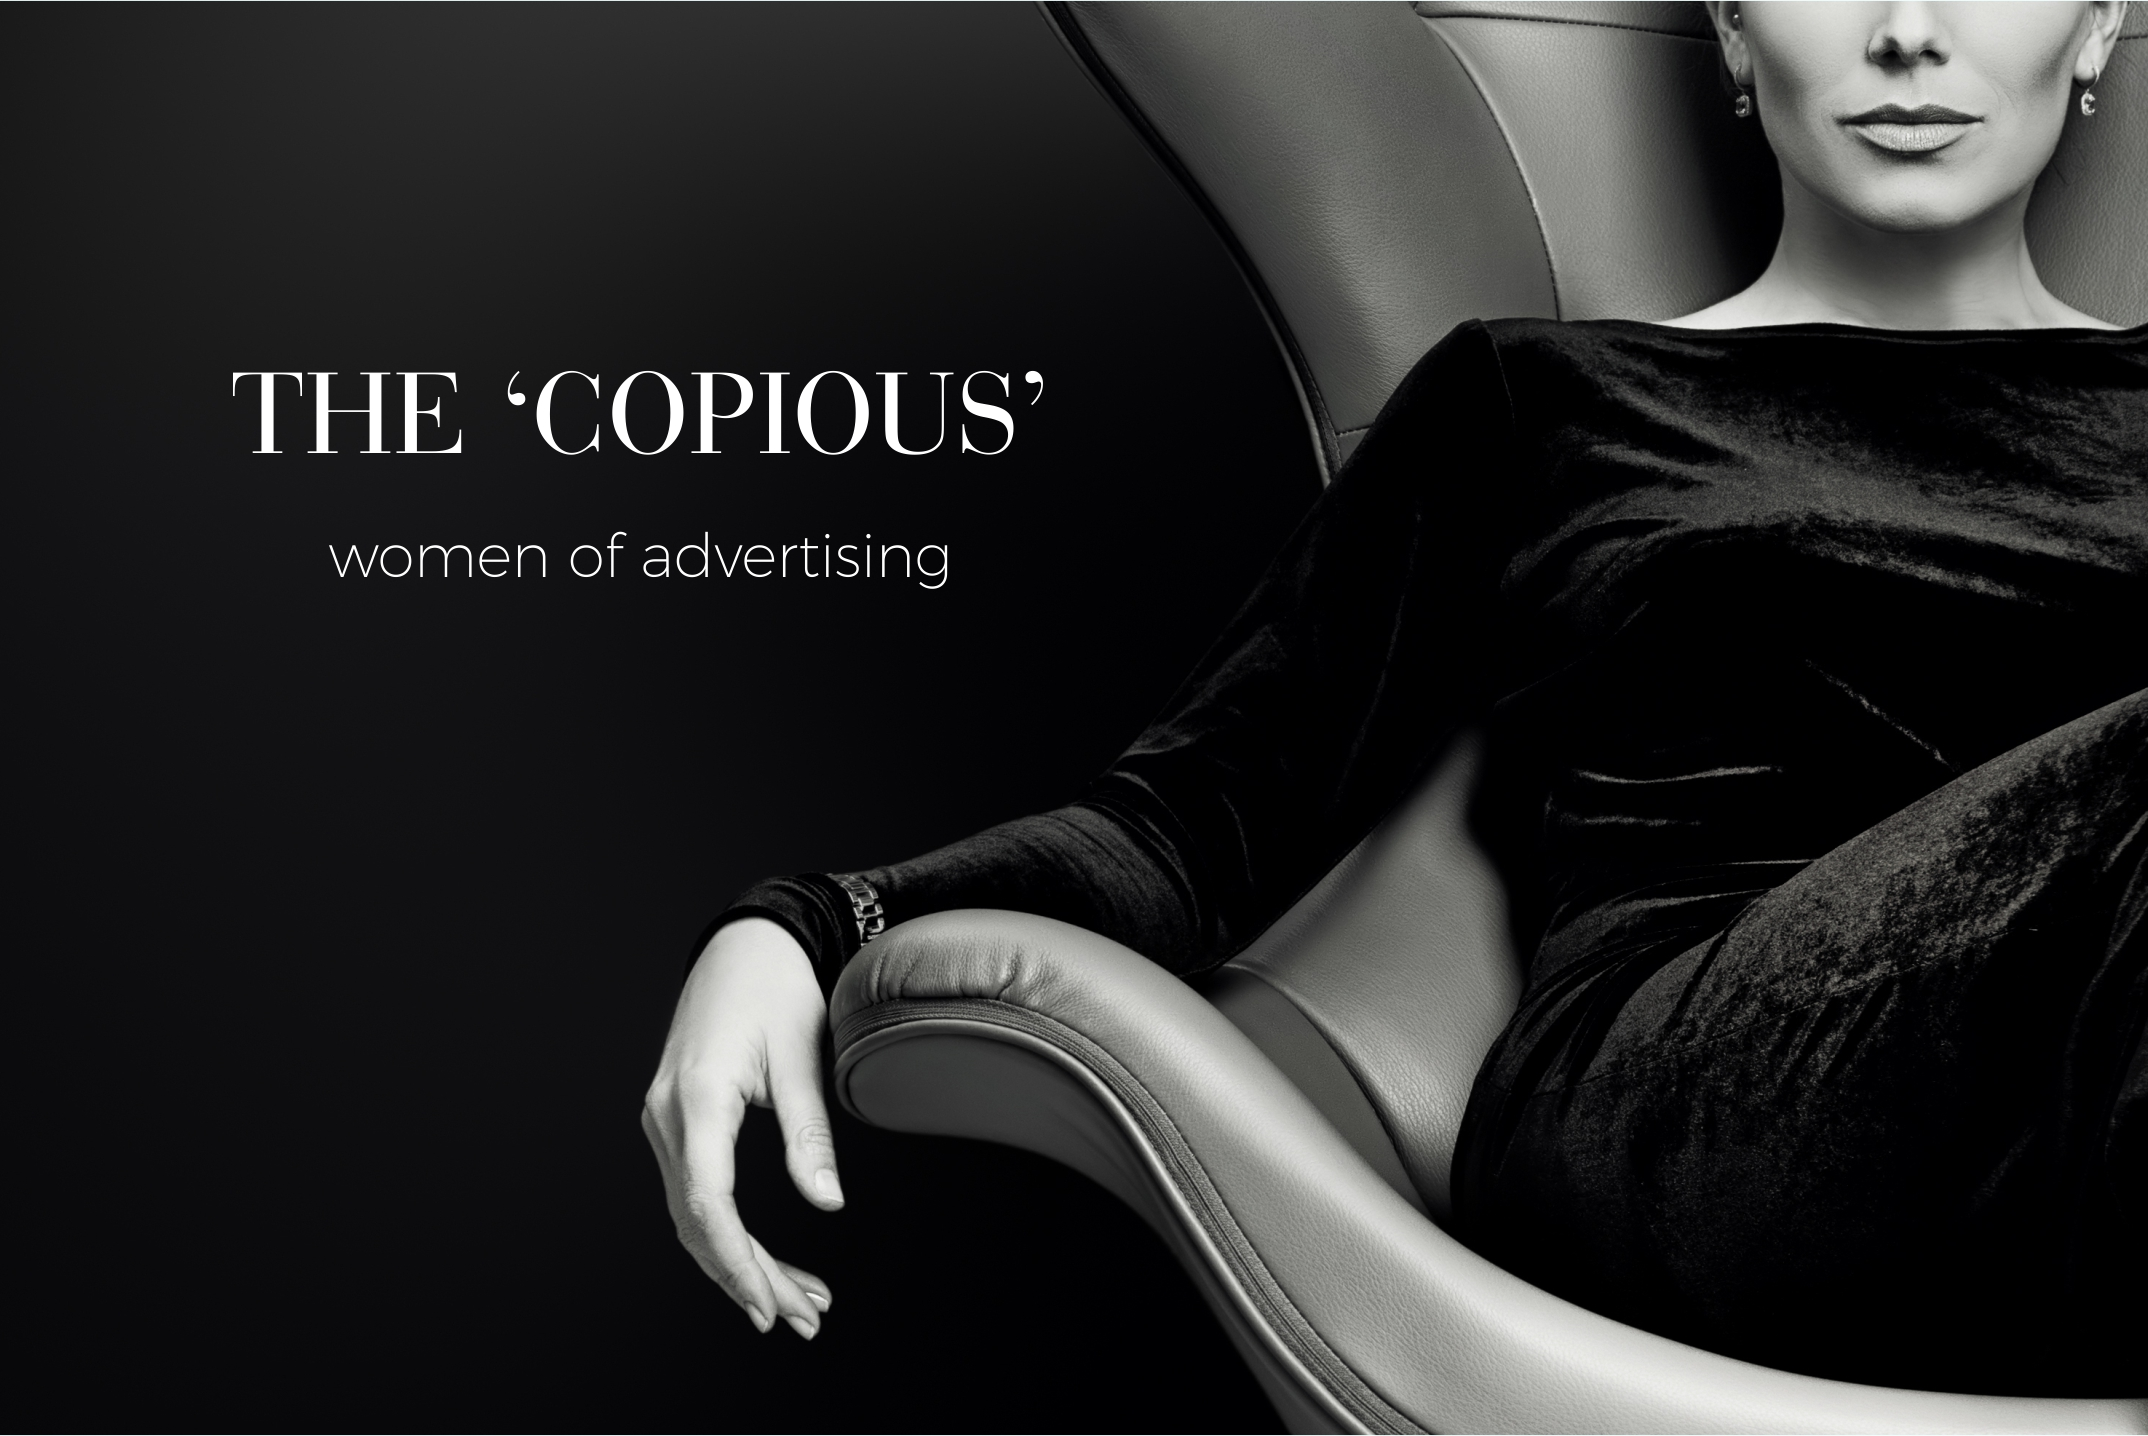 The 'copious' women of advertising